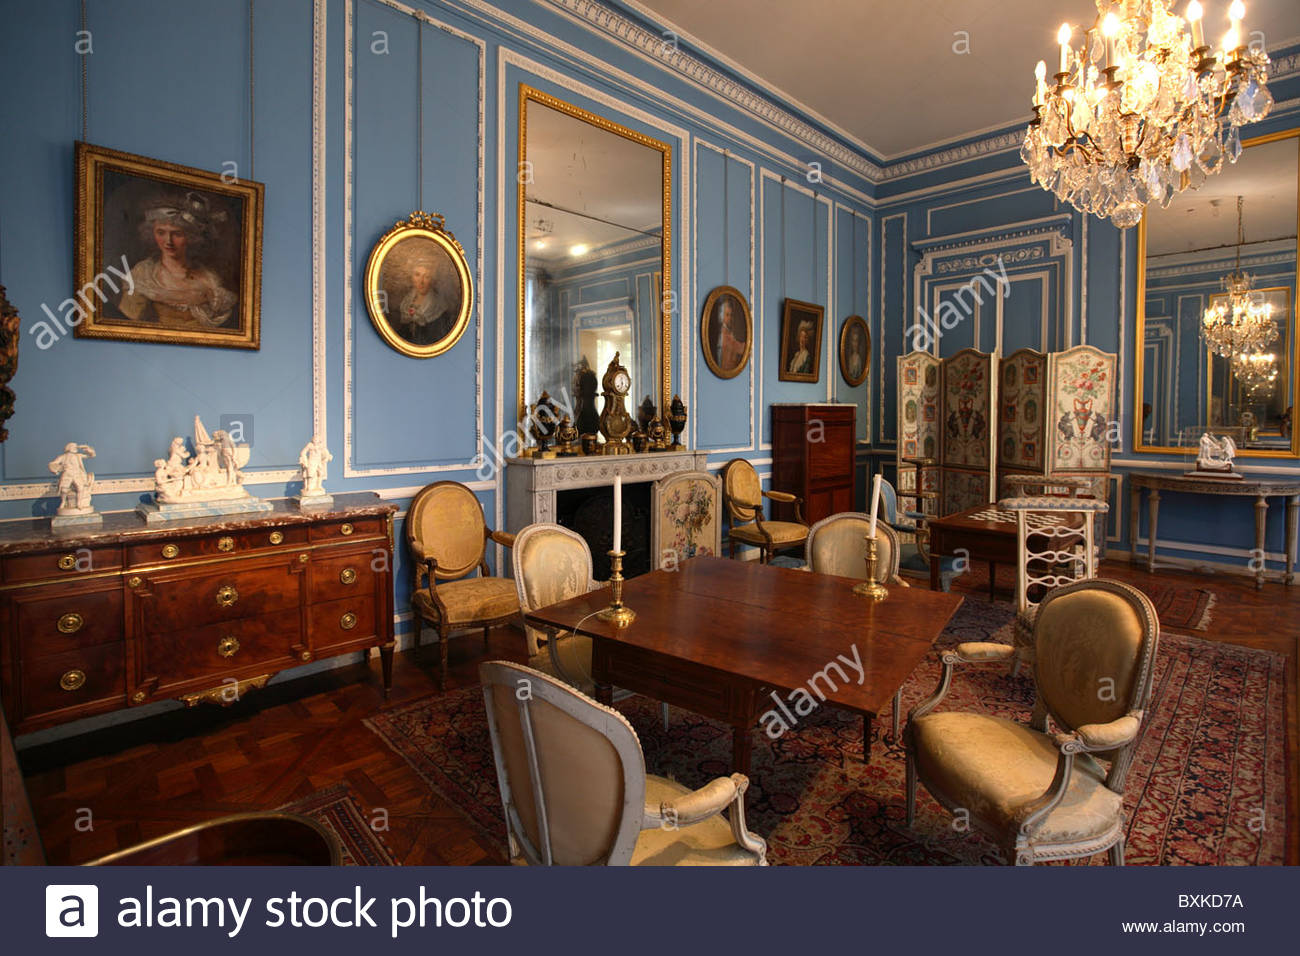 Salon bleu louis xvi in musee carnavalet paris stock photo 33618910 alamy - Salon louis xvi ...